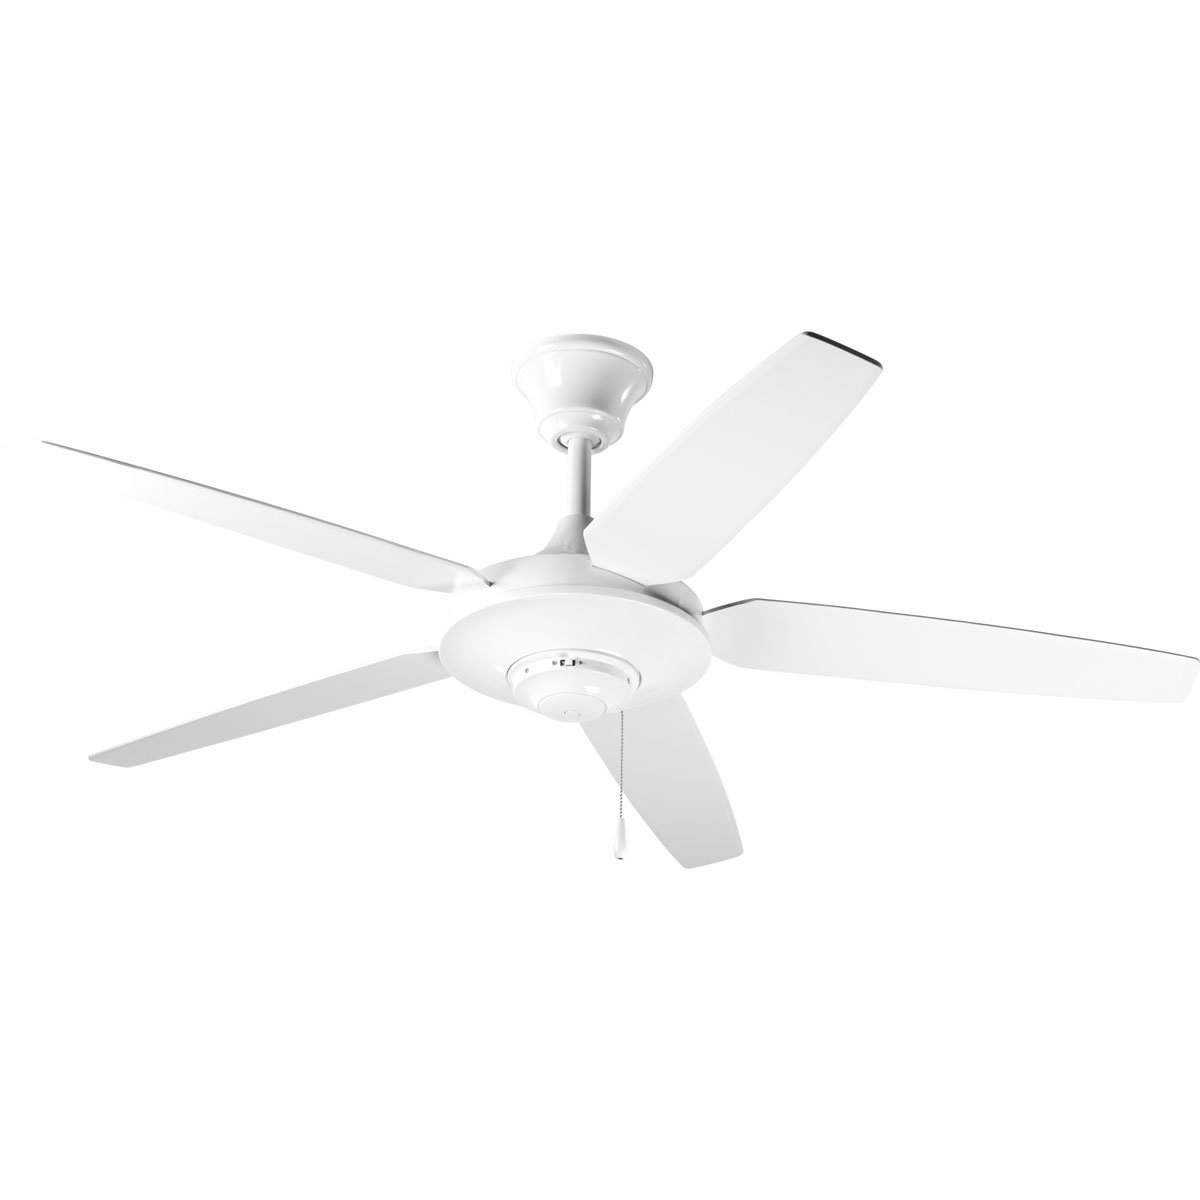 White Progress Lighting P2530-09 54-Inch 5 Star Fan with Reversible Silver Natural Cherry Blades, Brushed Nickel